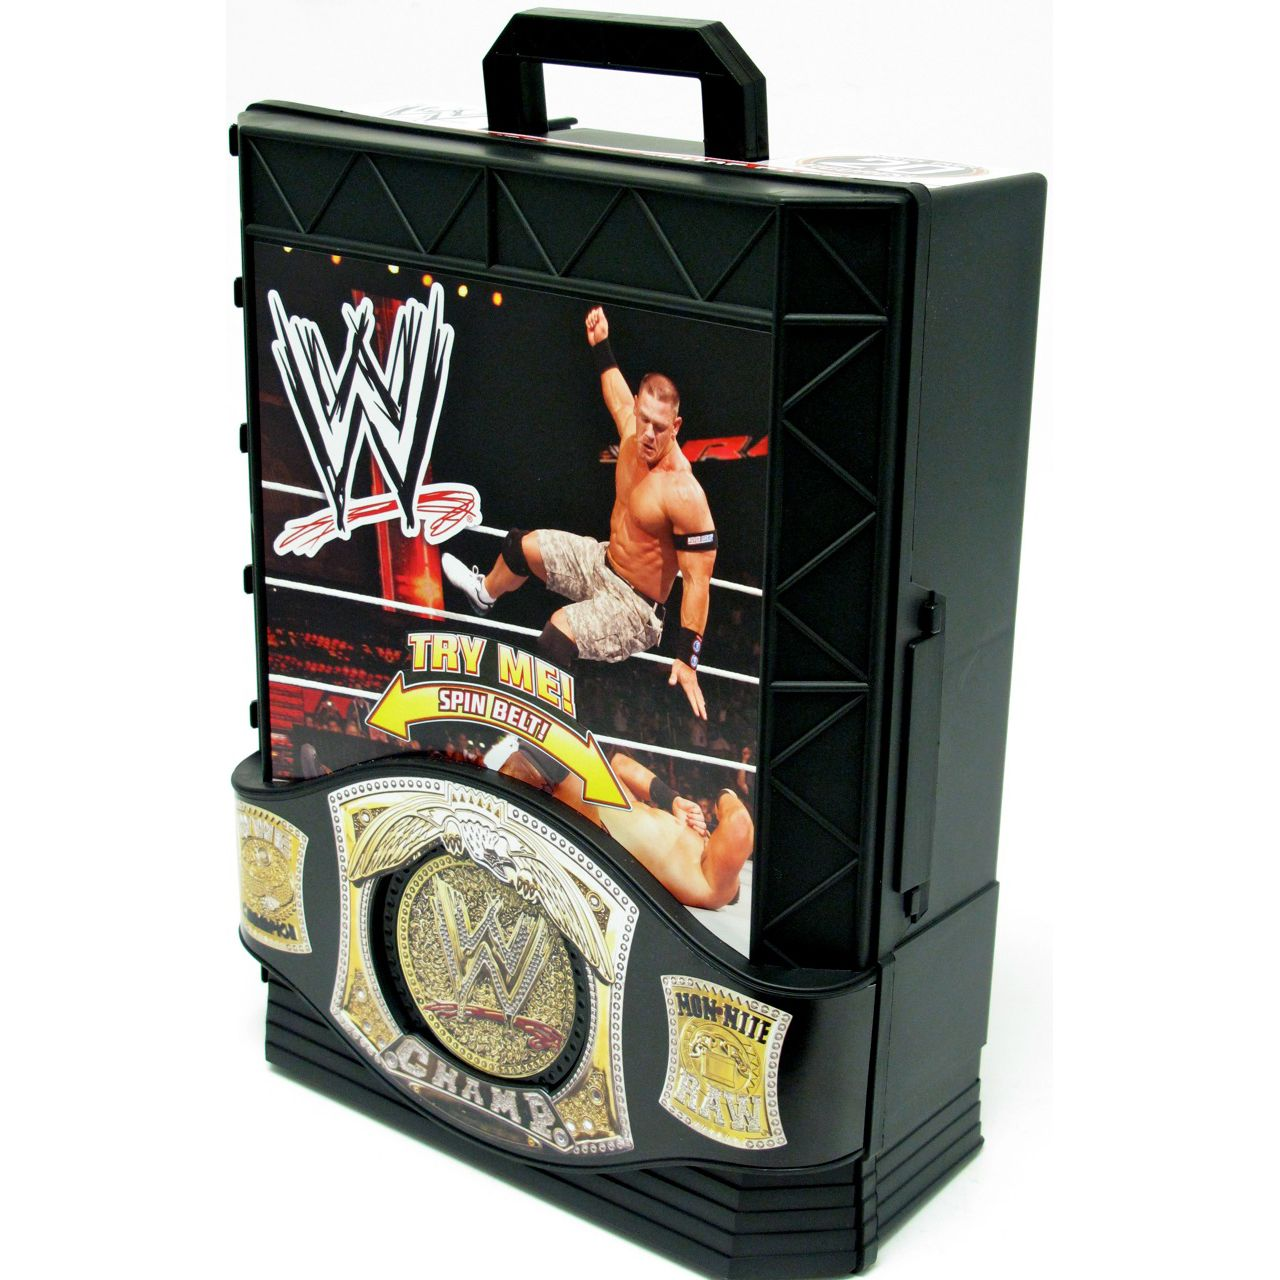 wrestling chairs for sale bedroom tv chair spin prod 707958601 hei333 andwid333 andop sharpen1